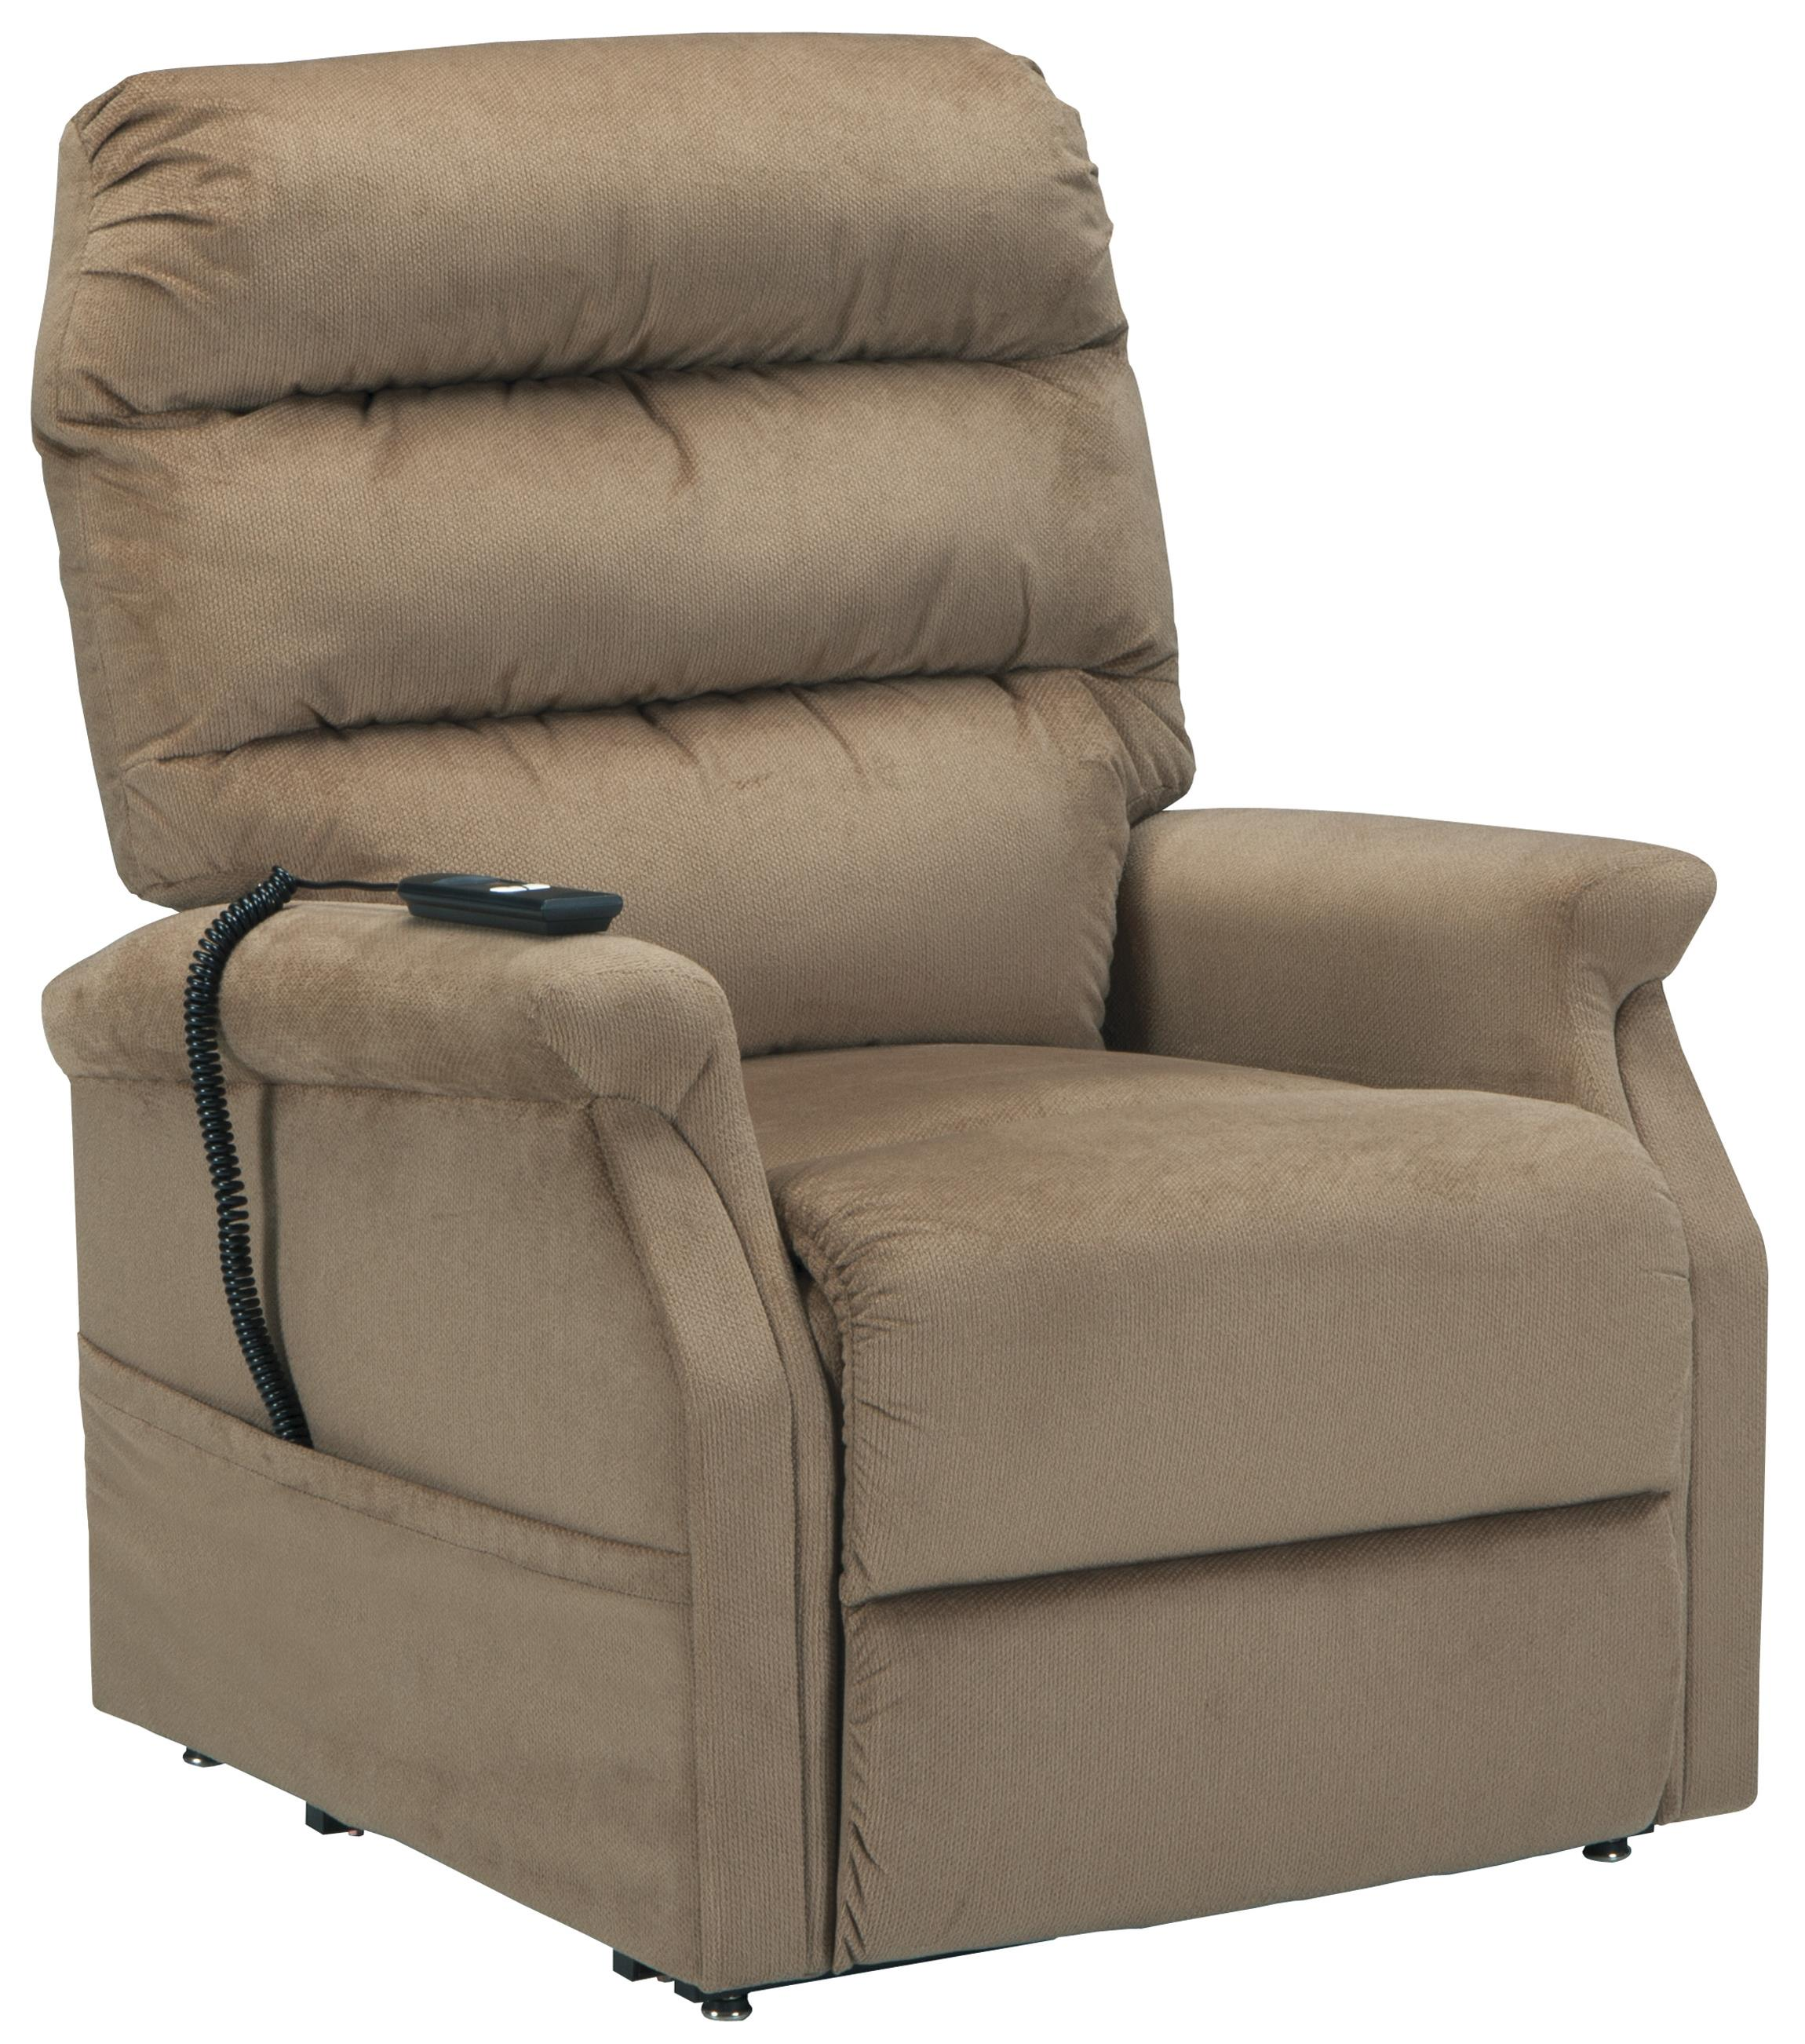 Power Lift Recliner with Remote Control by Signature Design by